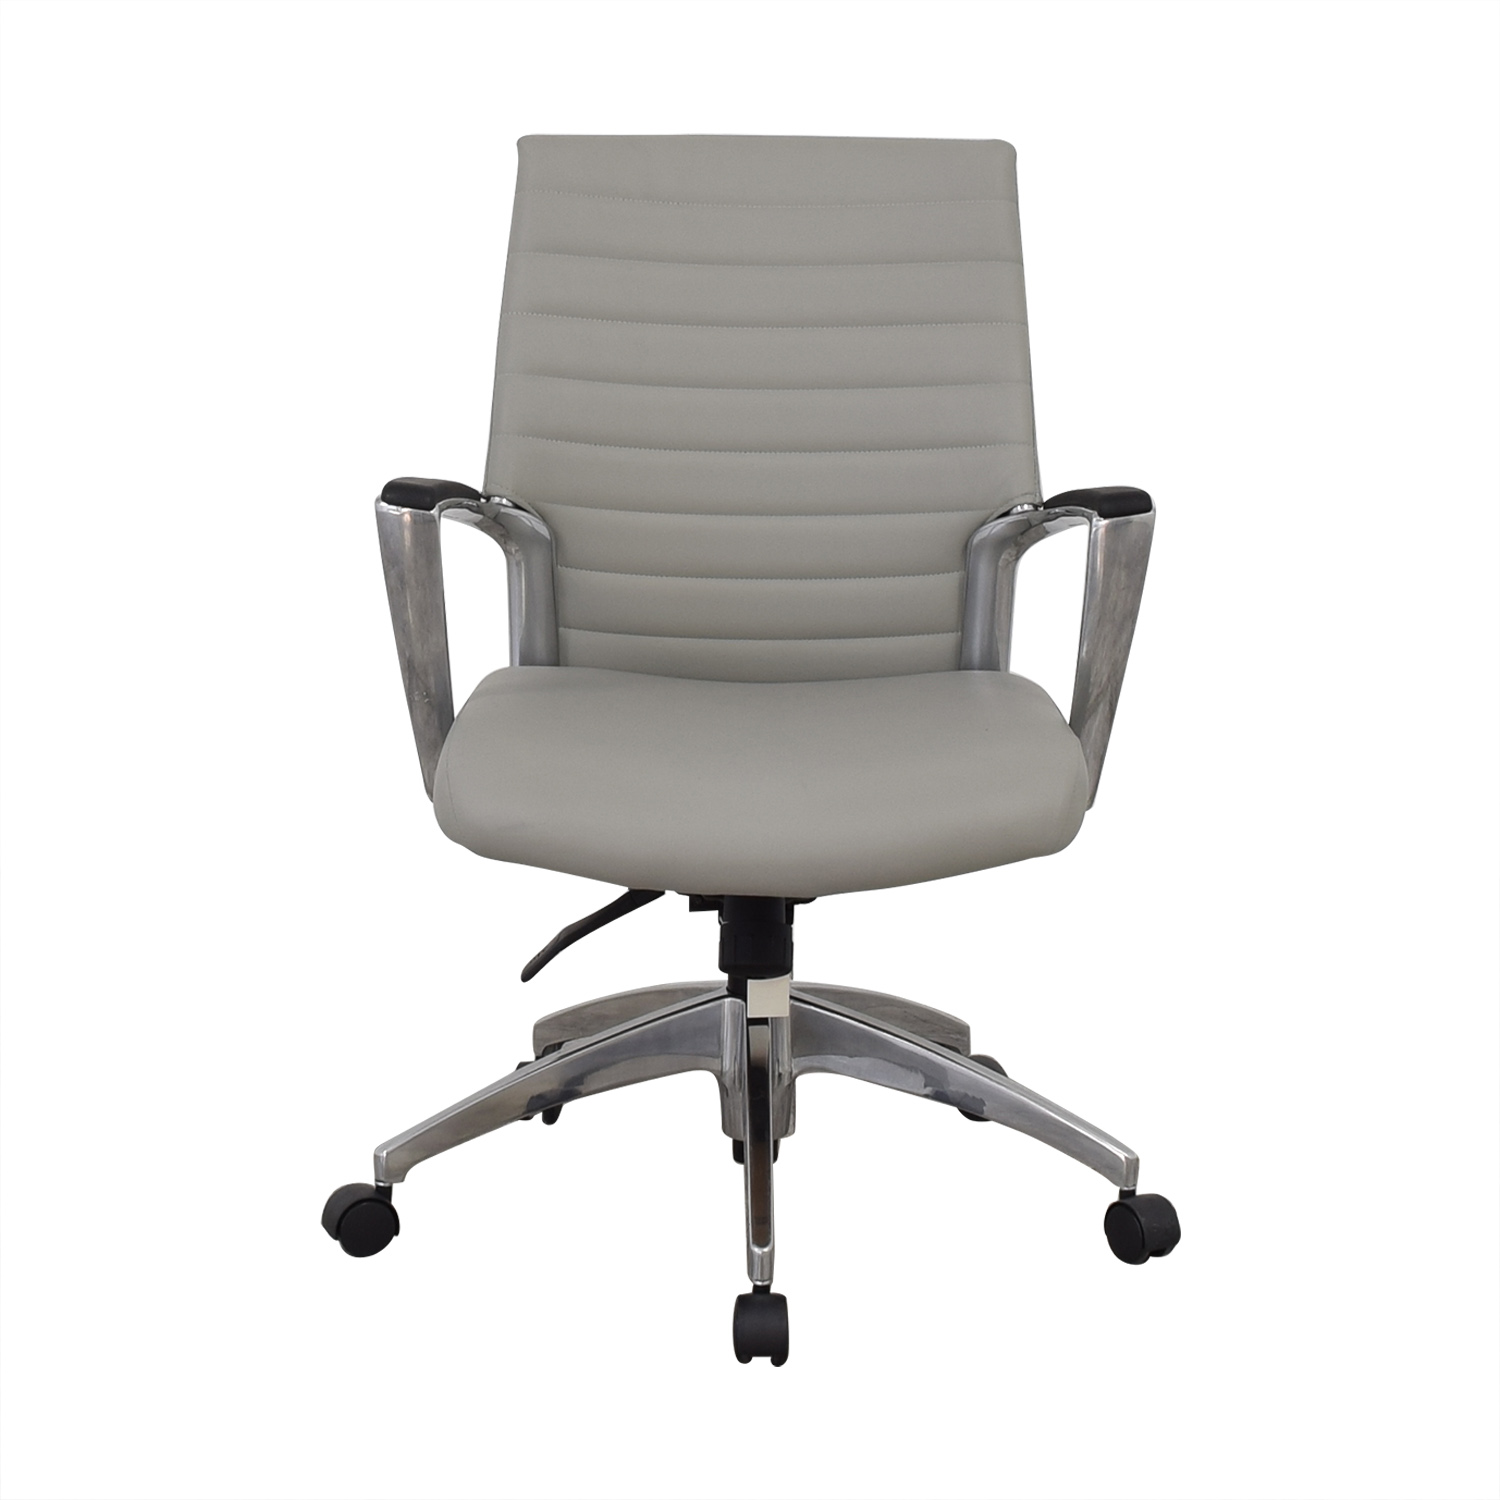 Global Global Accord Upholstered Medium Back Tilter Chair ma